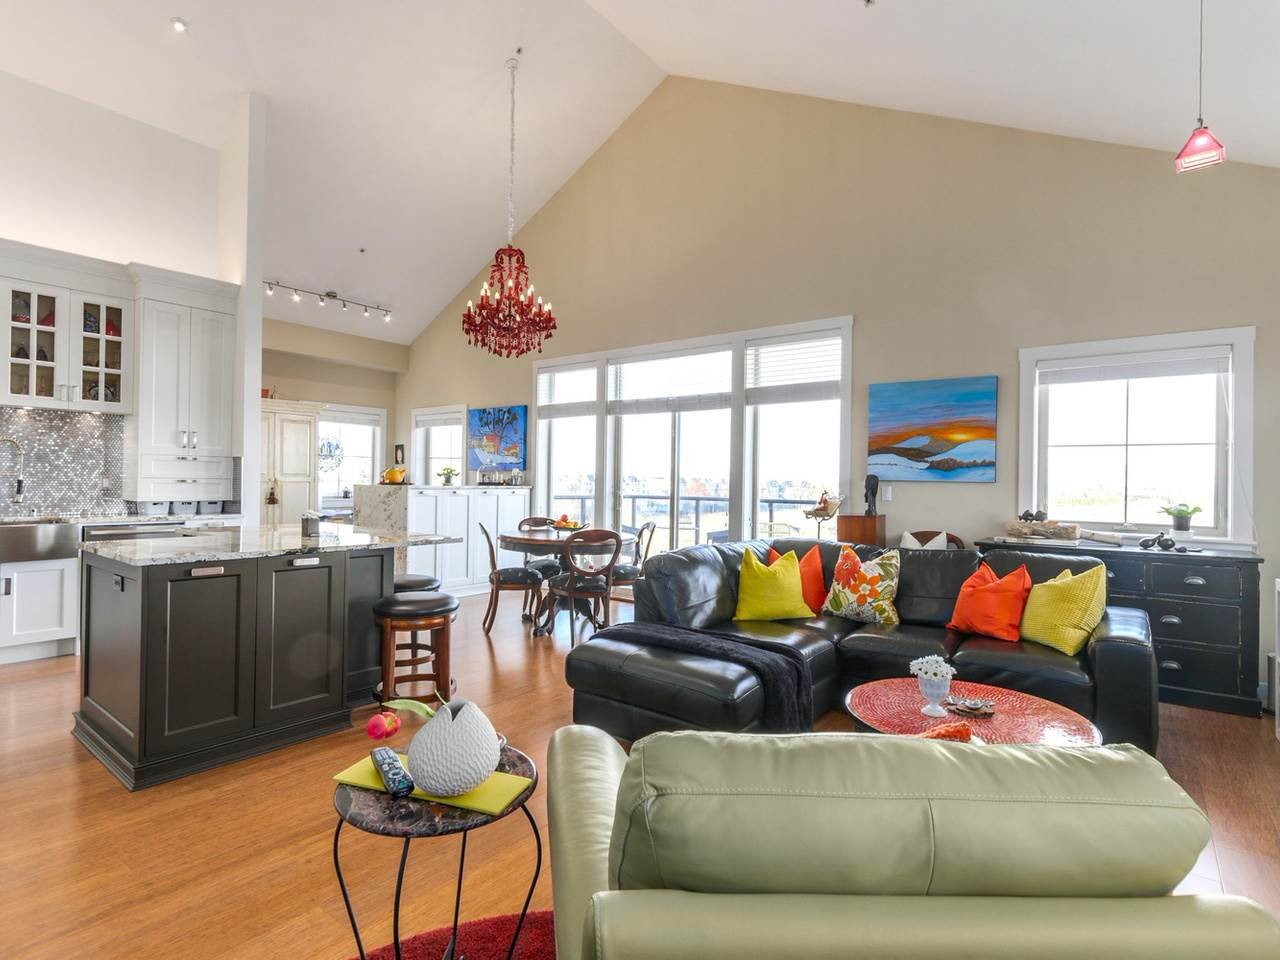 "Photo 7: Photos: 419 6233 LONDON Road in Richmond: Steveston South Condo for sale in ""LONDON STATION ONE"" : MLS®# R2133663"